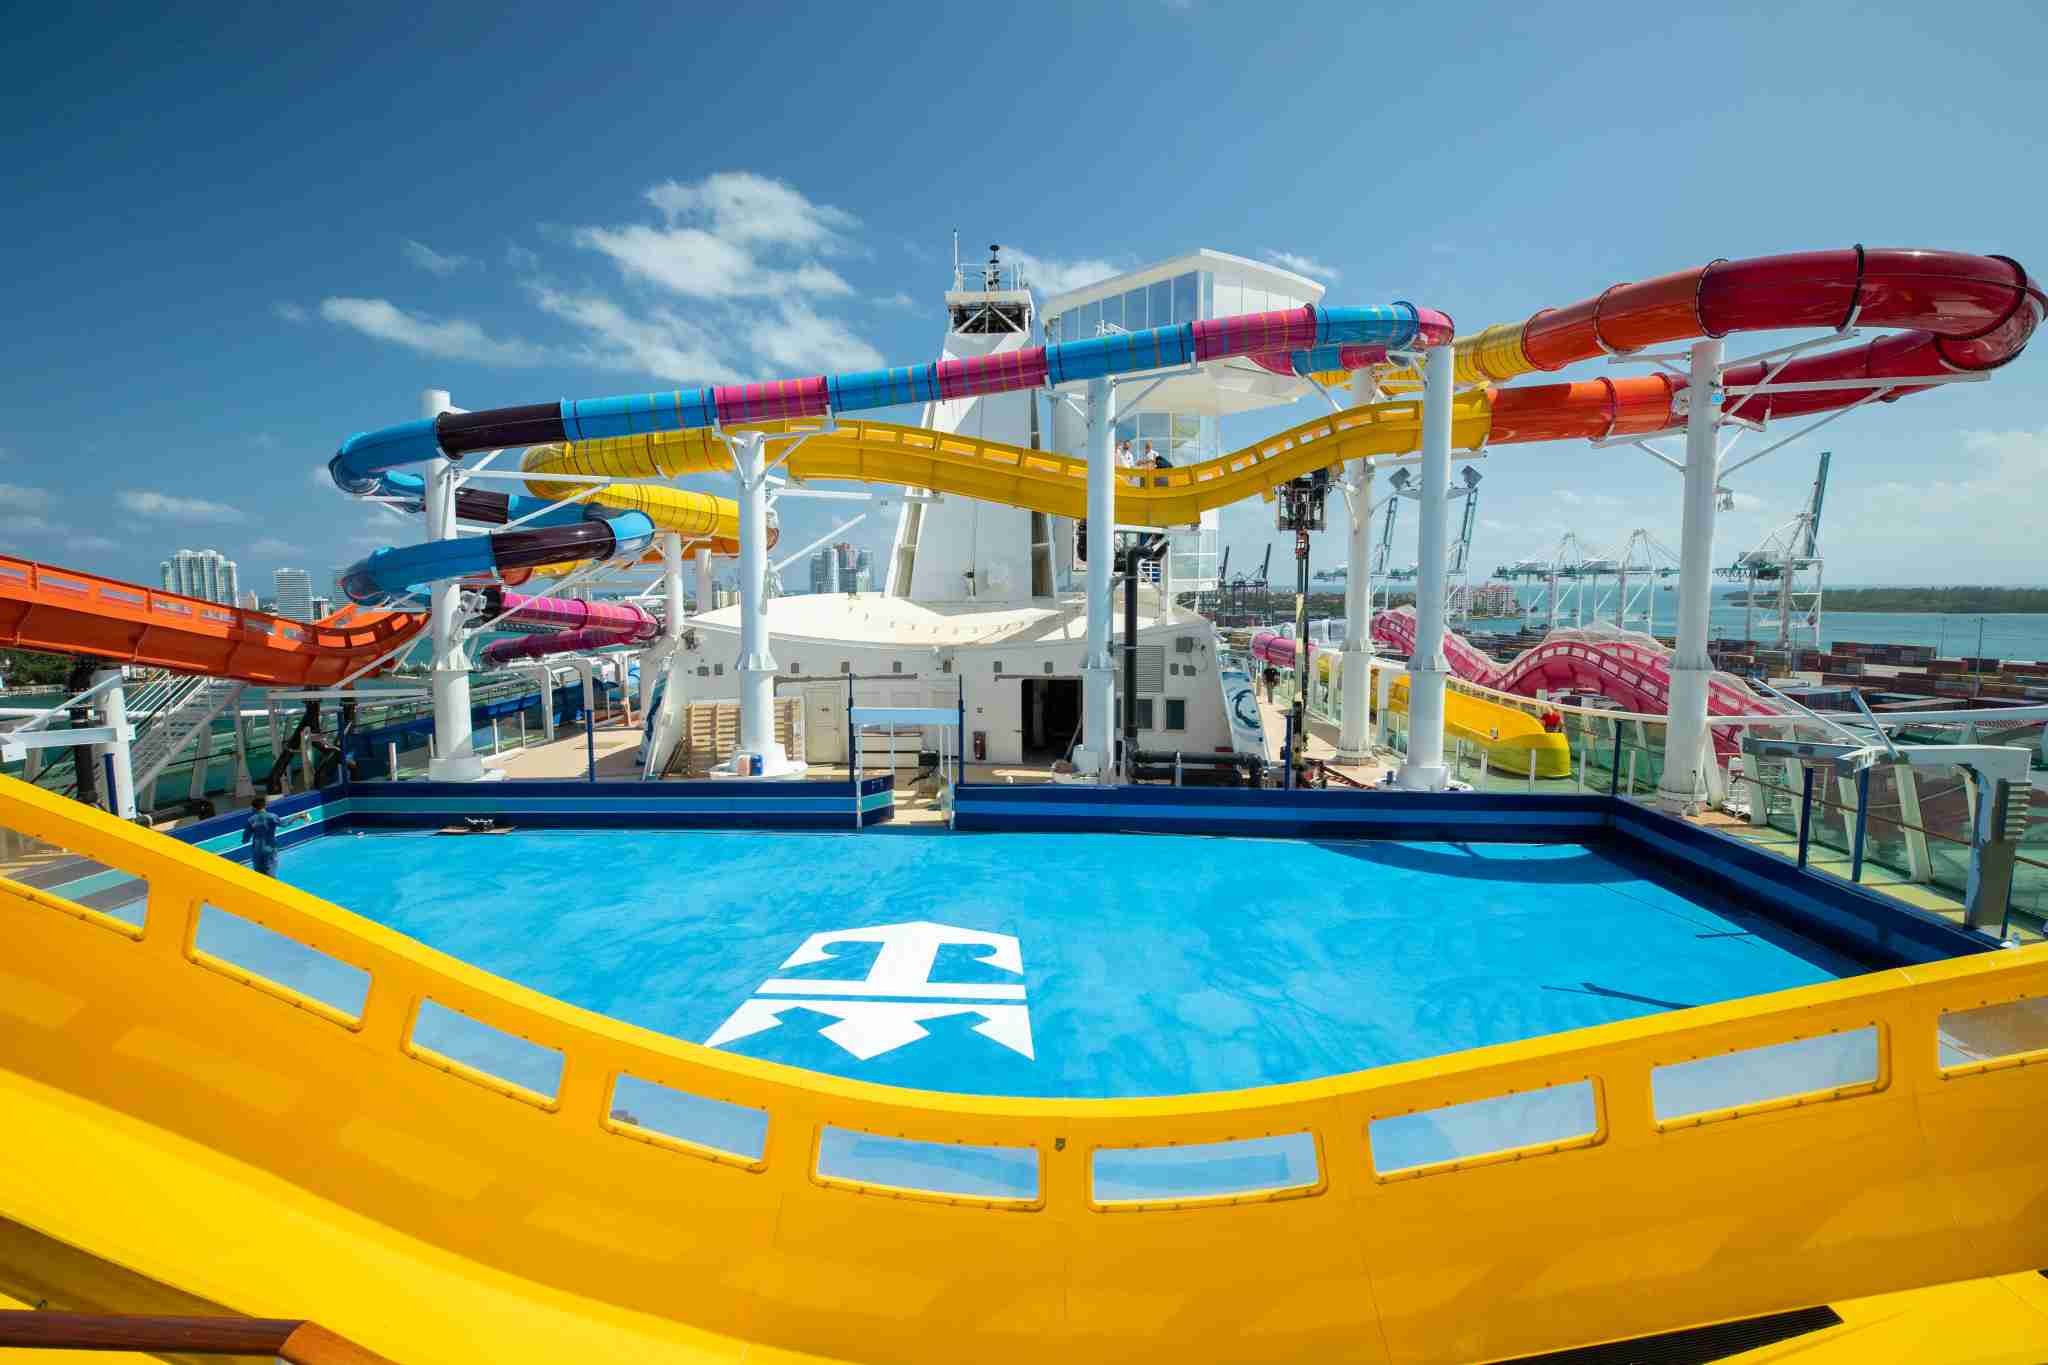 The Blaster and Rip Tide slides on Navigator of the Seas Royal Amplified. Photo courtesy of Royal Caribbean International.